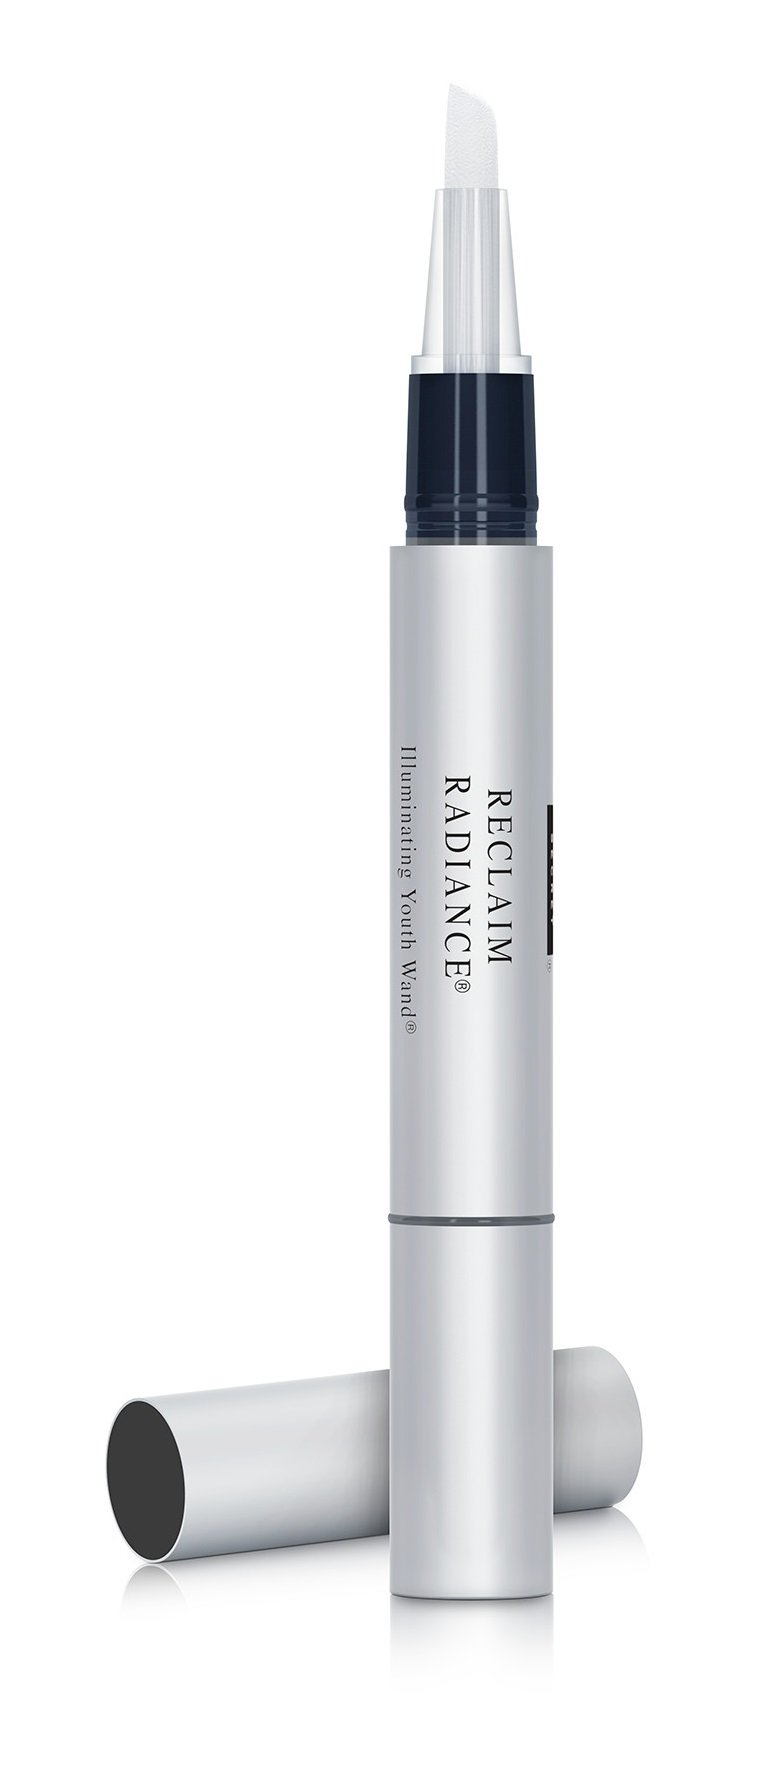 Principal Secret – Reclaim Radiance Illuminating Youth Wand – Conceal & Highlight in Natural-Looking Pink Tone – 90 Day Supply/1.77 Milliliters